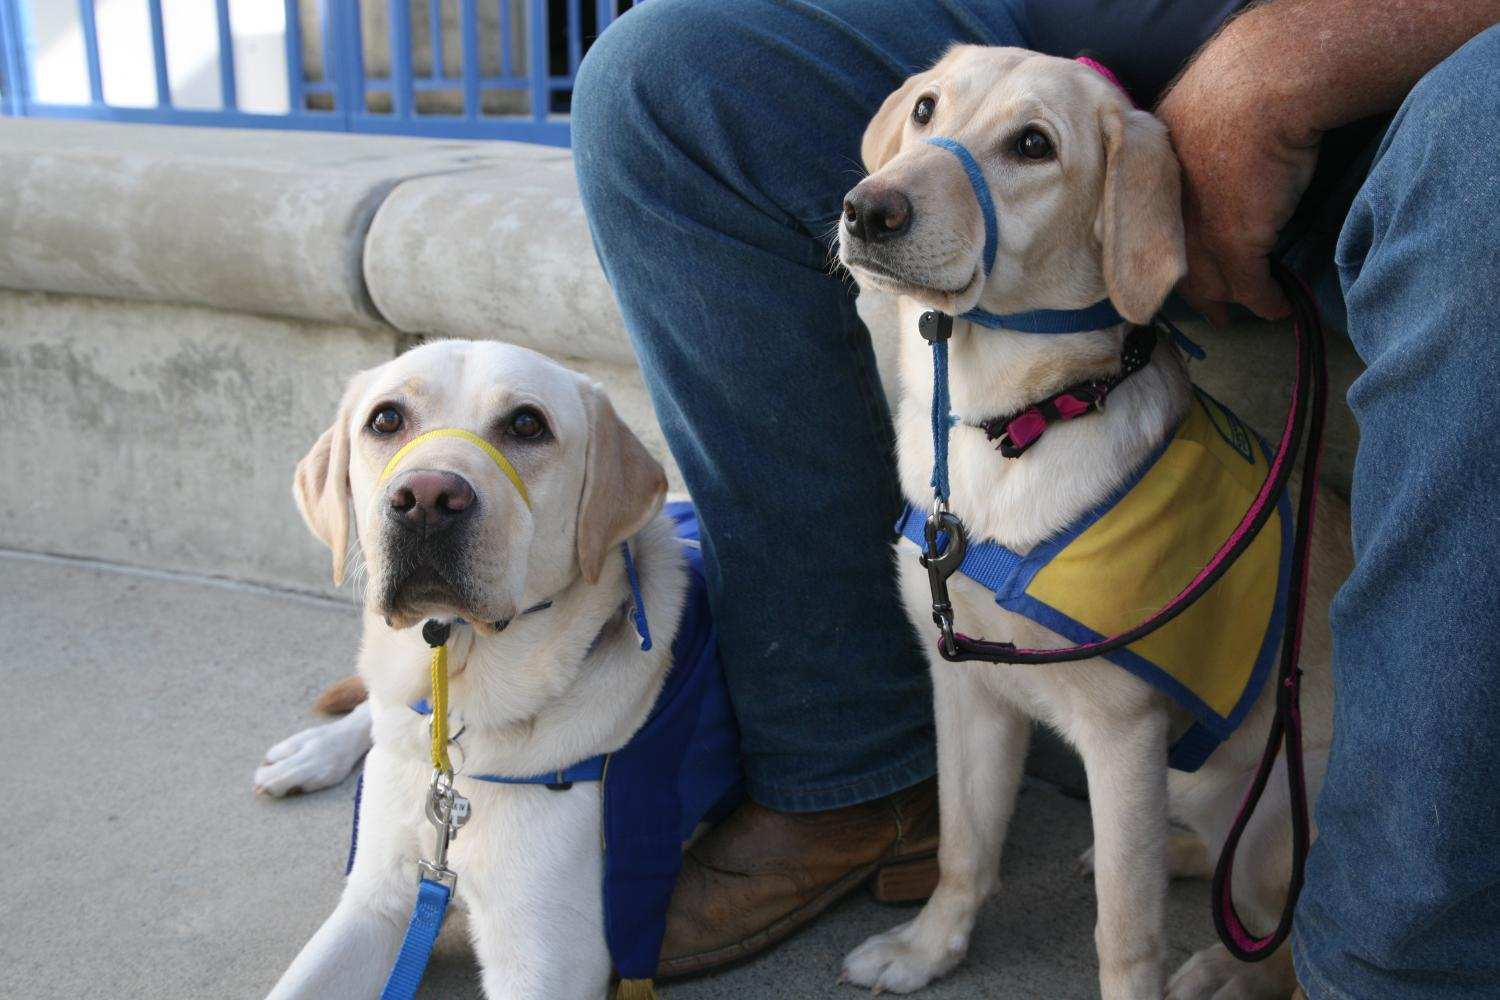 two service dogs stand side-by-side, Mochi and Kodiak